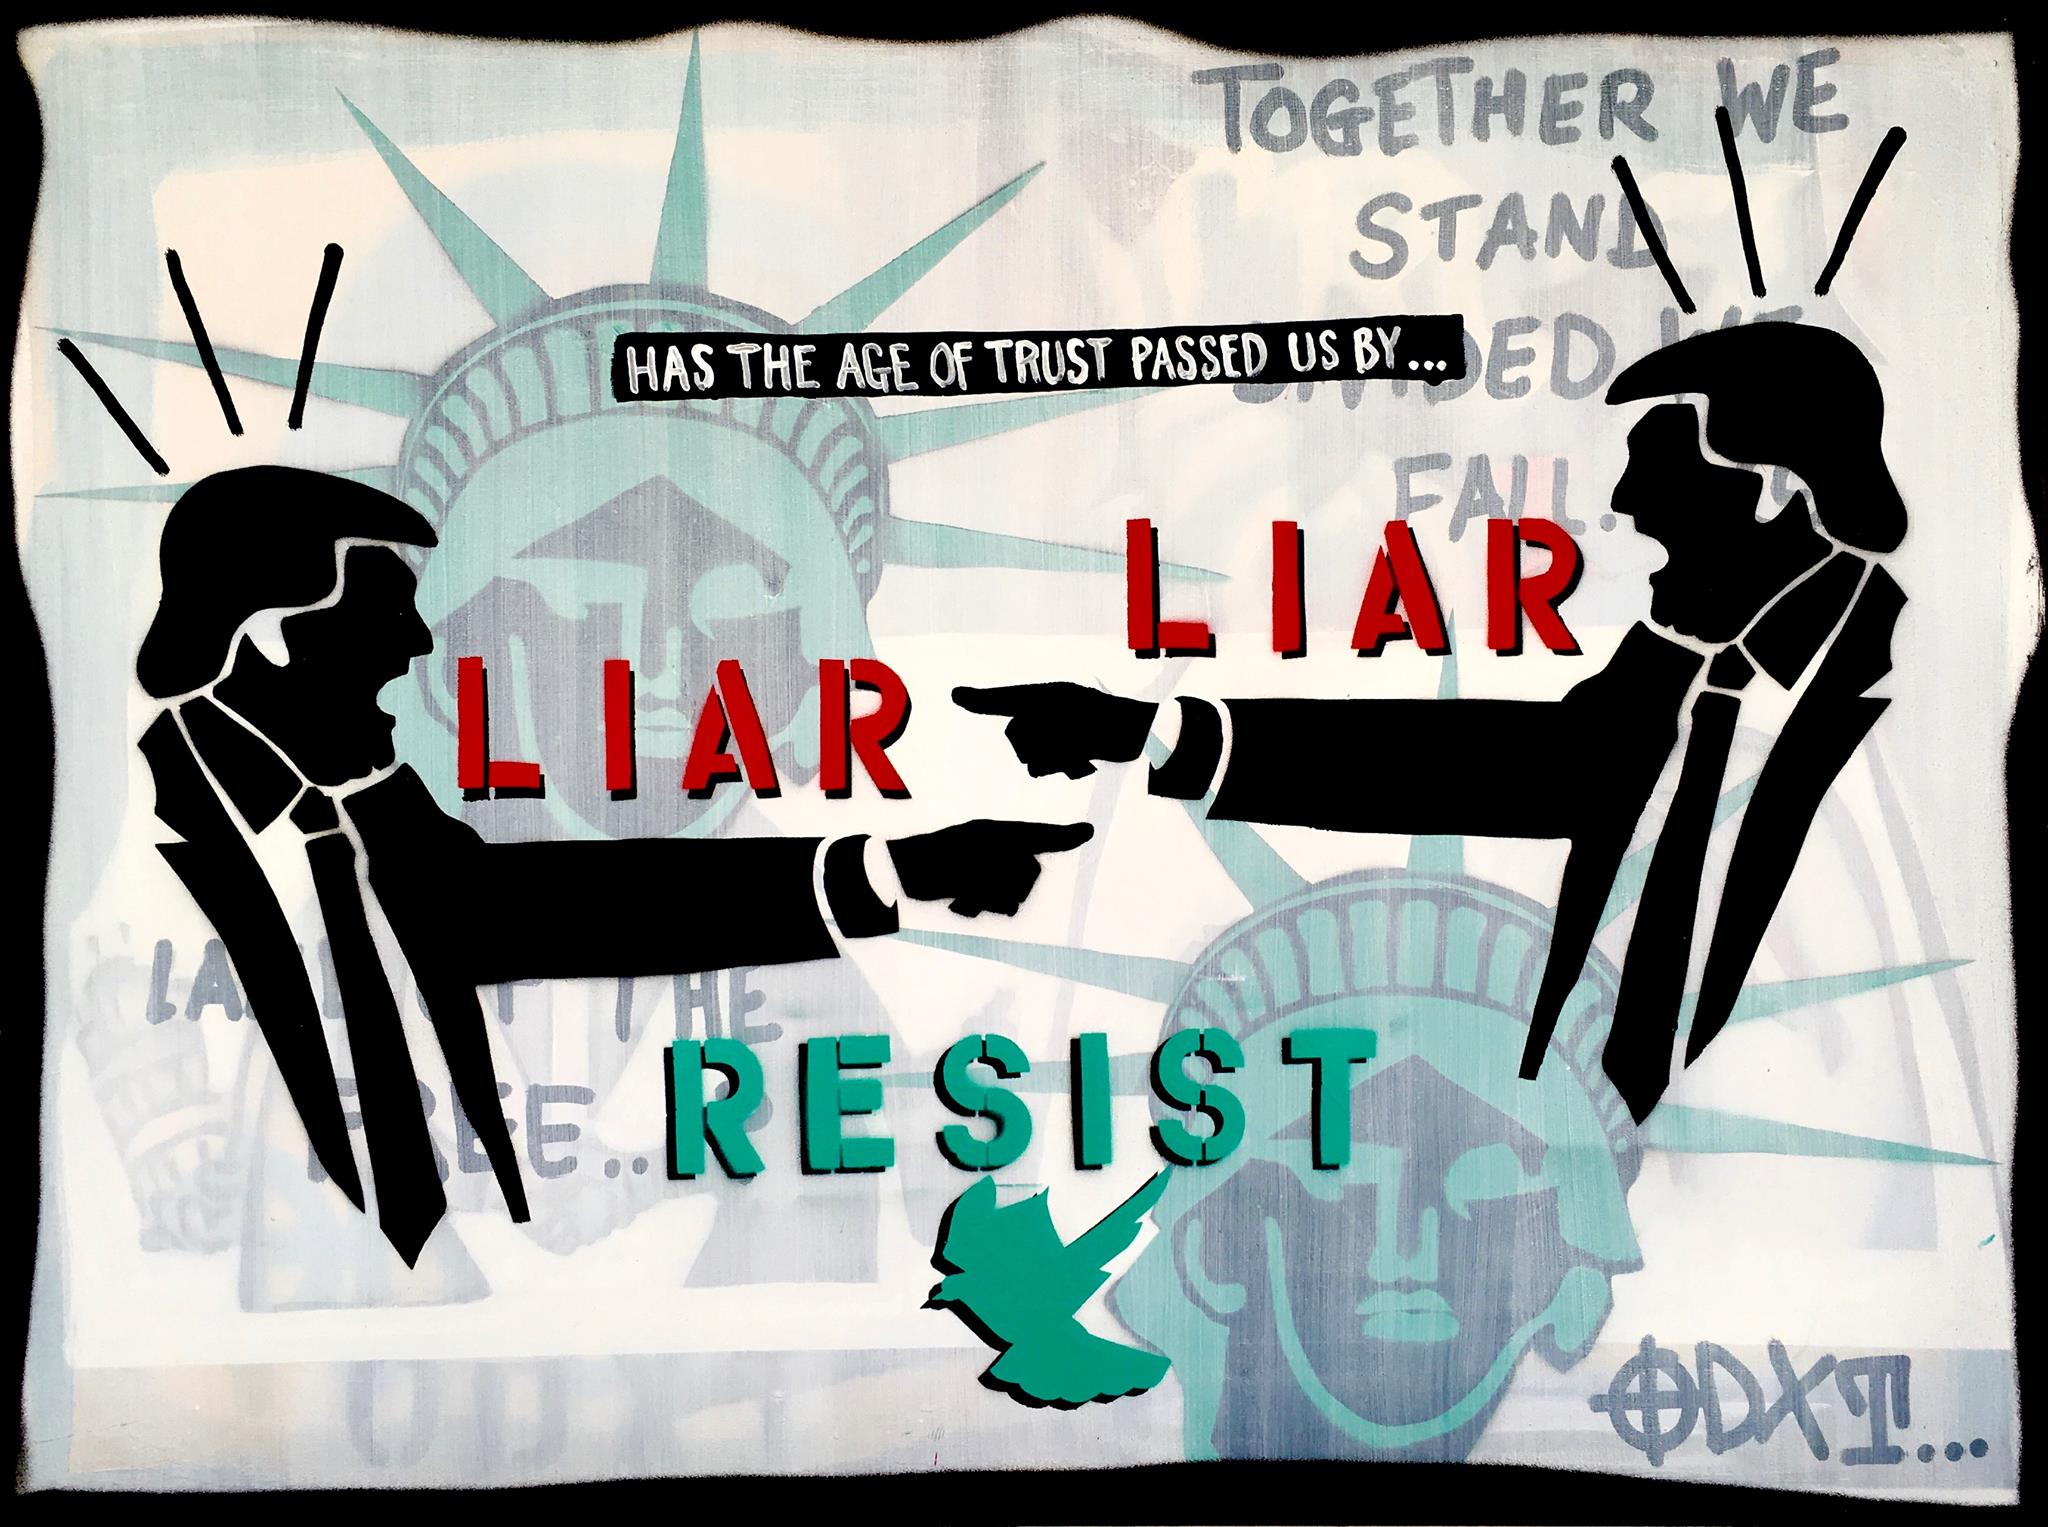 Dean_Rosensweig_aritst_american_pop_art_political_anti_Trump_propaganda_trustworthiness_liar__resist_SWAG-ART_liar